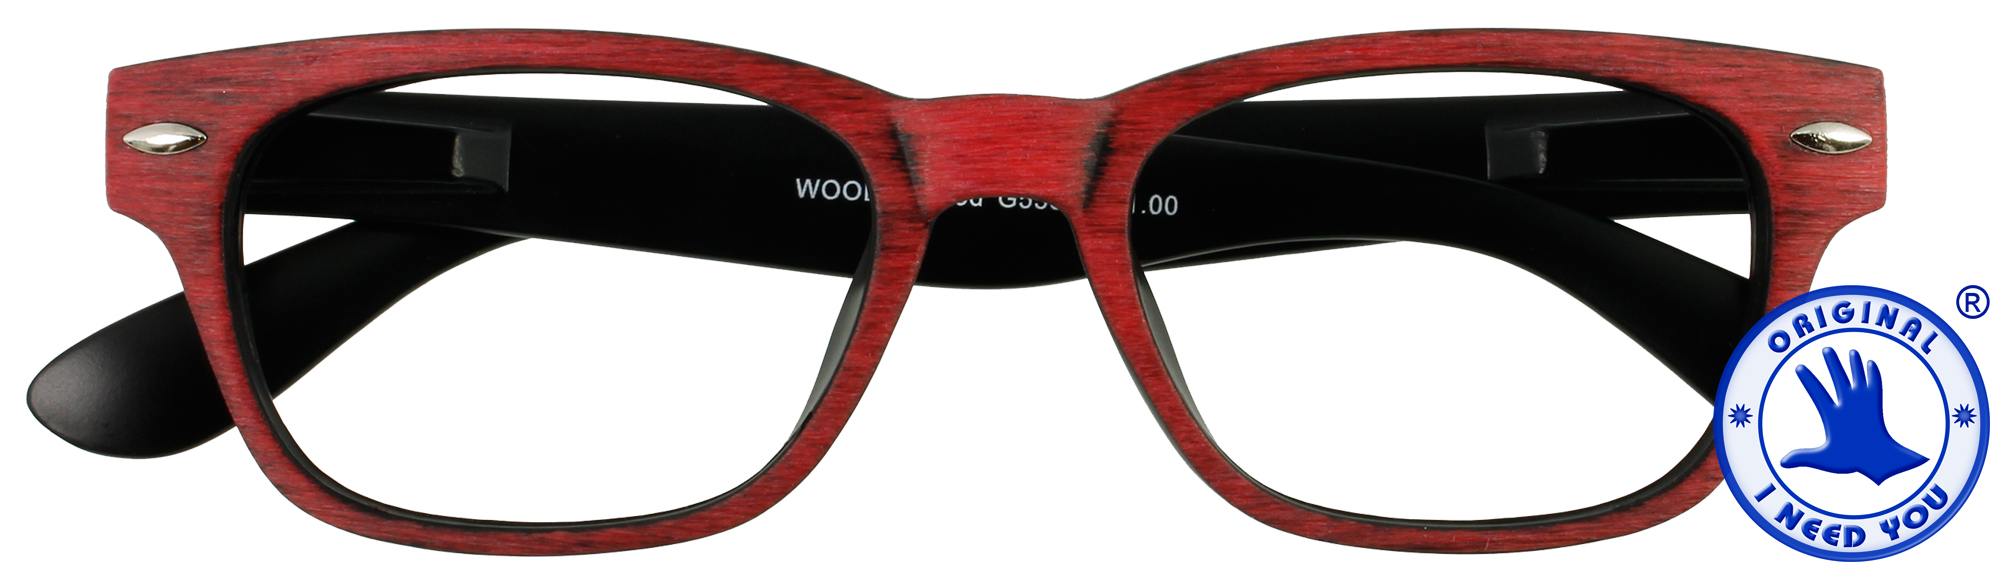 woody_wood_g55300_red_front